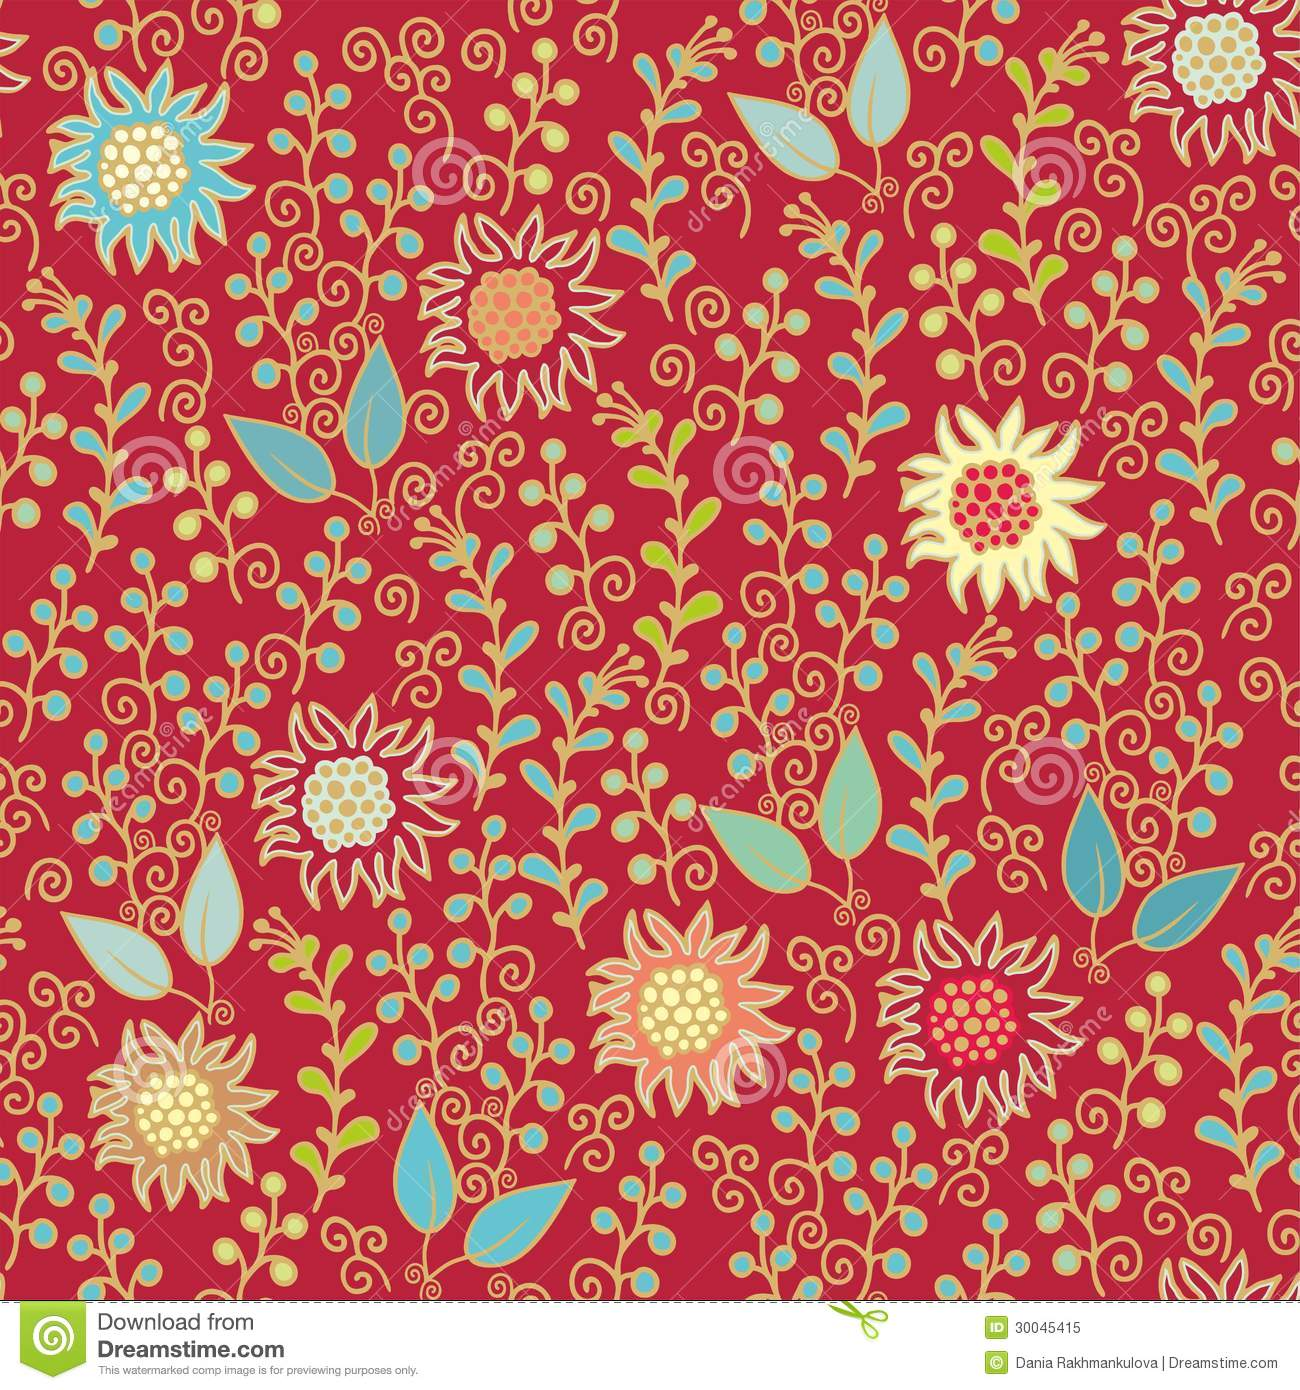 Floral decor in indian style for scrapbook paper design cards